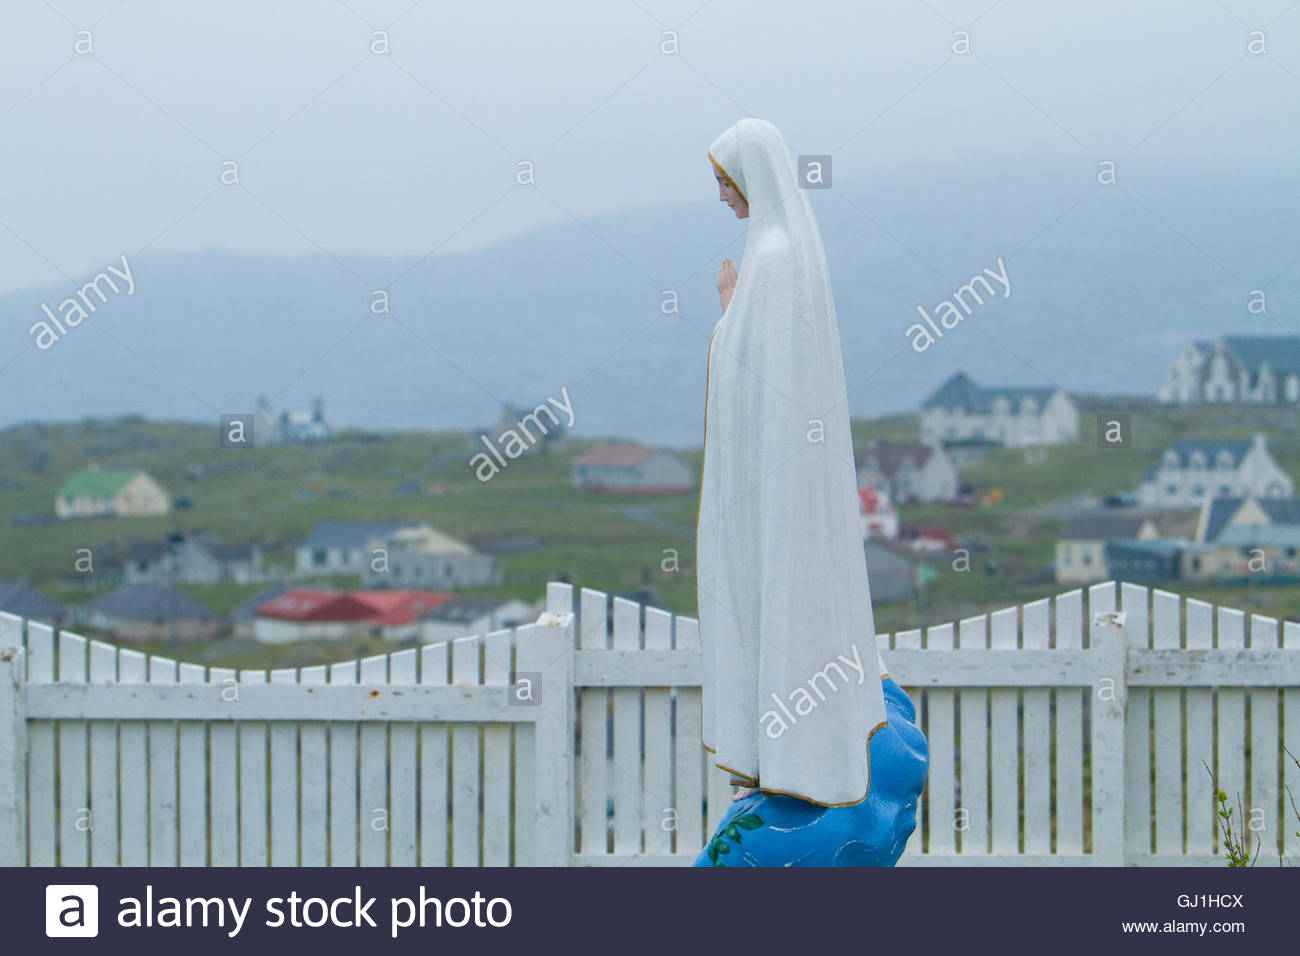 Statue of Our Lady of Fatima at Am Baile - a settlement on the Isle of Eriskay, Outer Hebrides, Scotland. Stock Photo